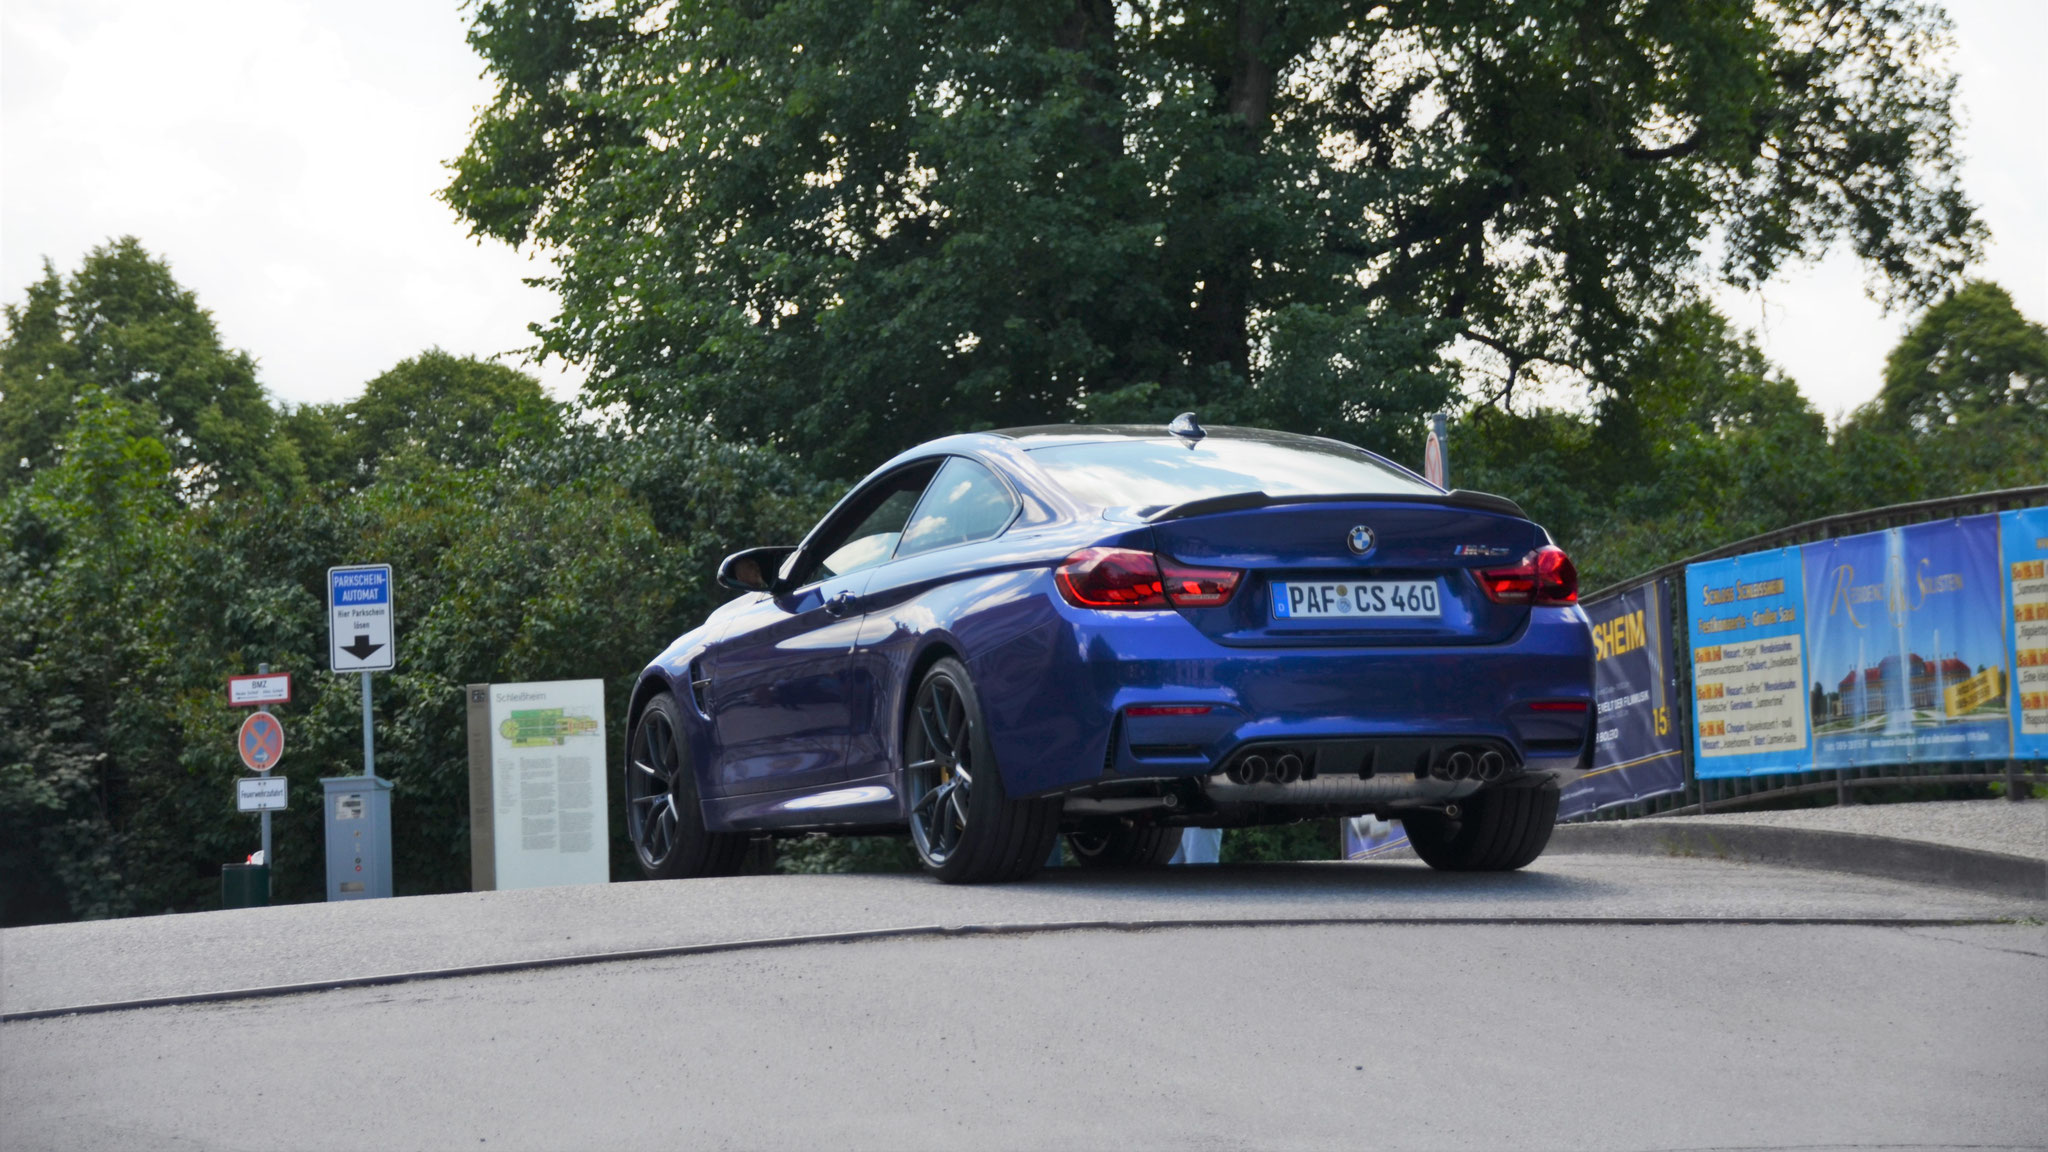 BMW M4 CS - PAF-CS-460